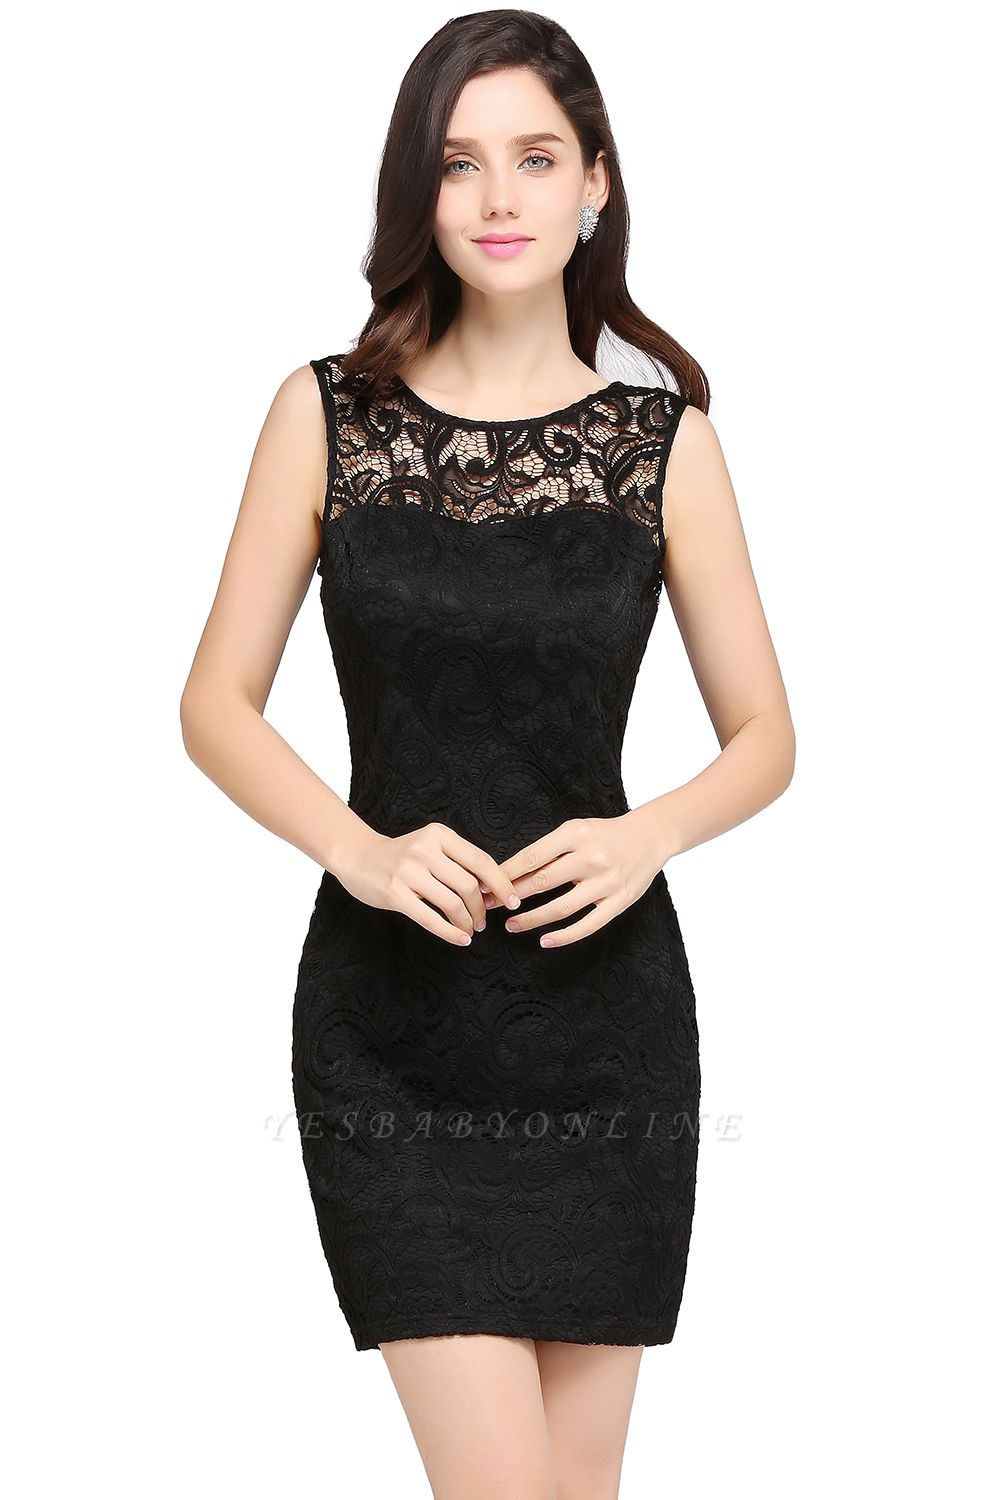 Cheap Cheap Sleeveless Bodycon Black Lace Short Sexy Cocktail Dress in Stock